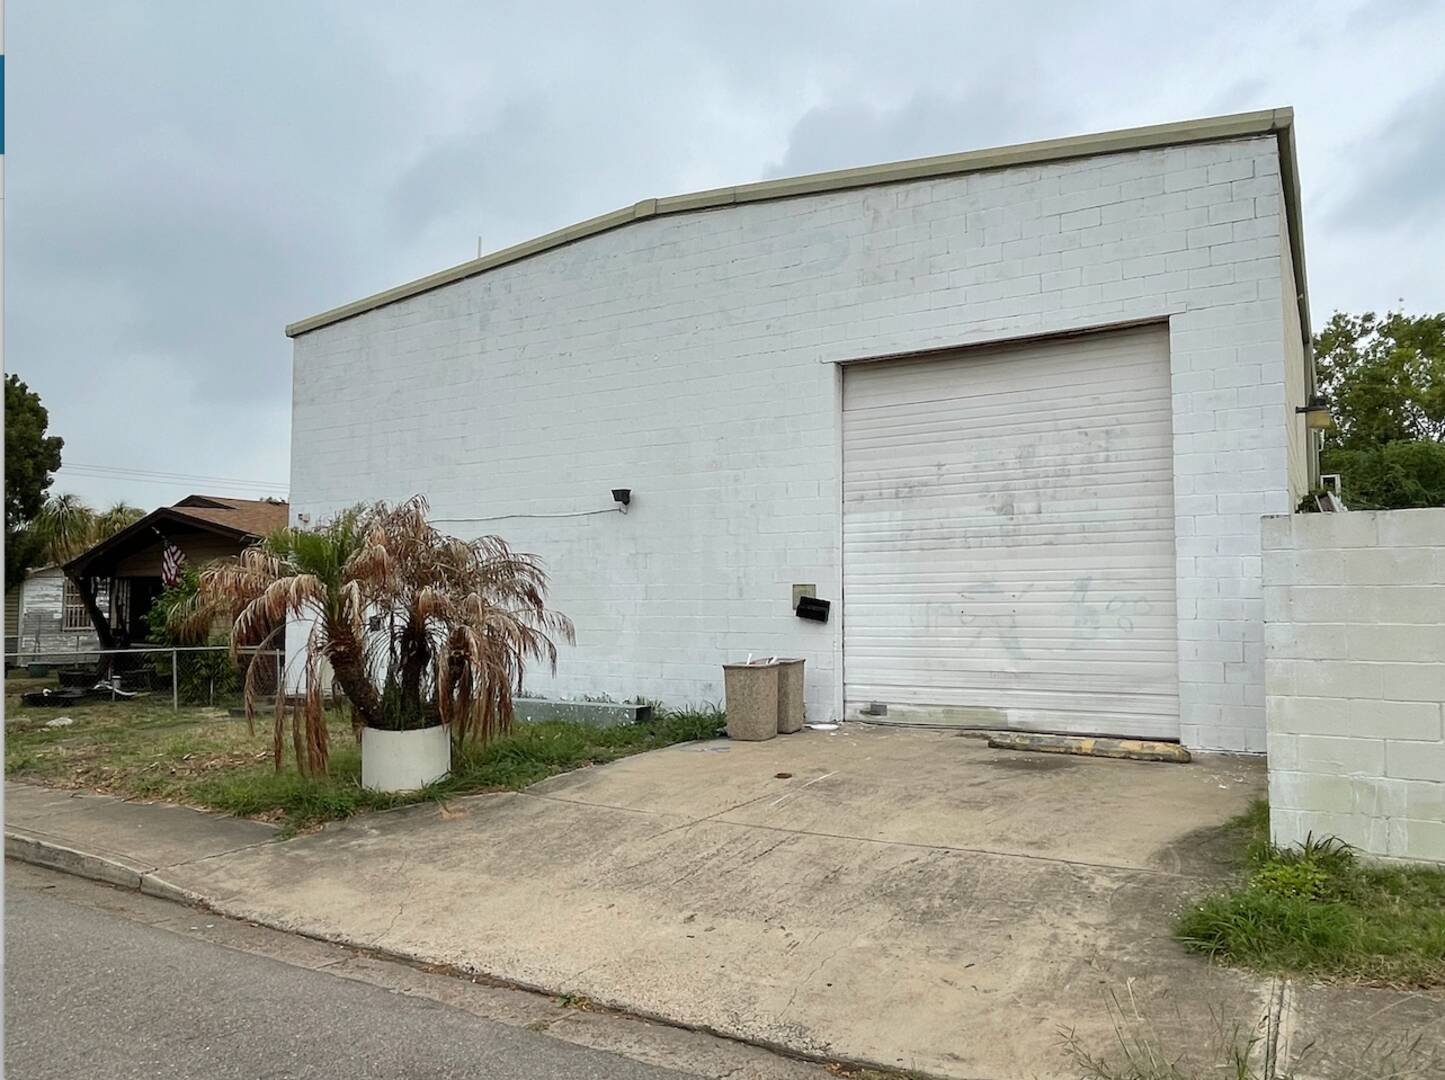 615 Doherty Ave, Mission TX Mission, TX 78572